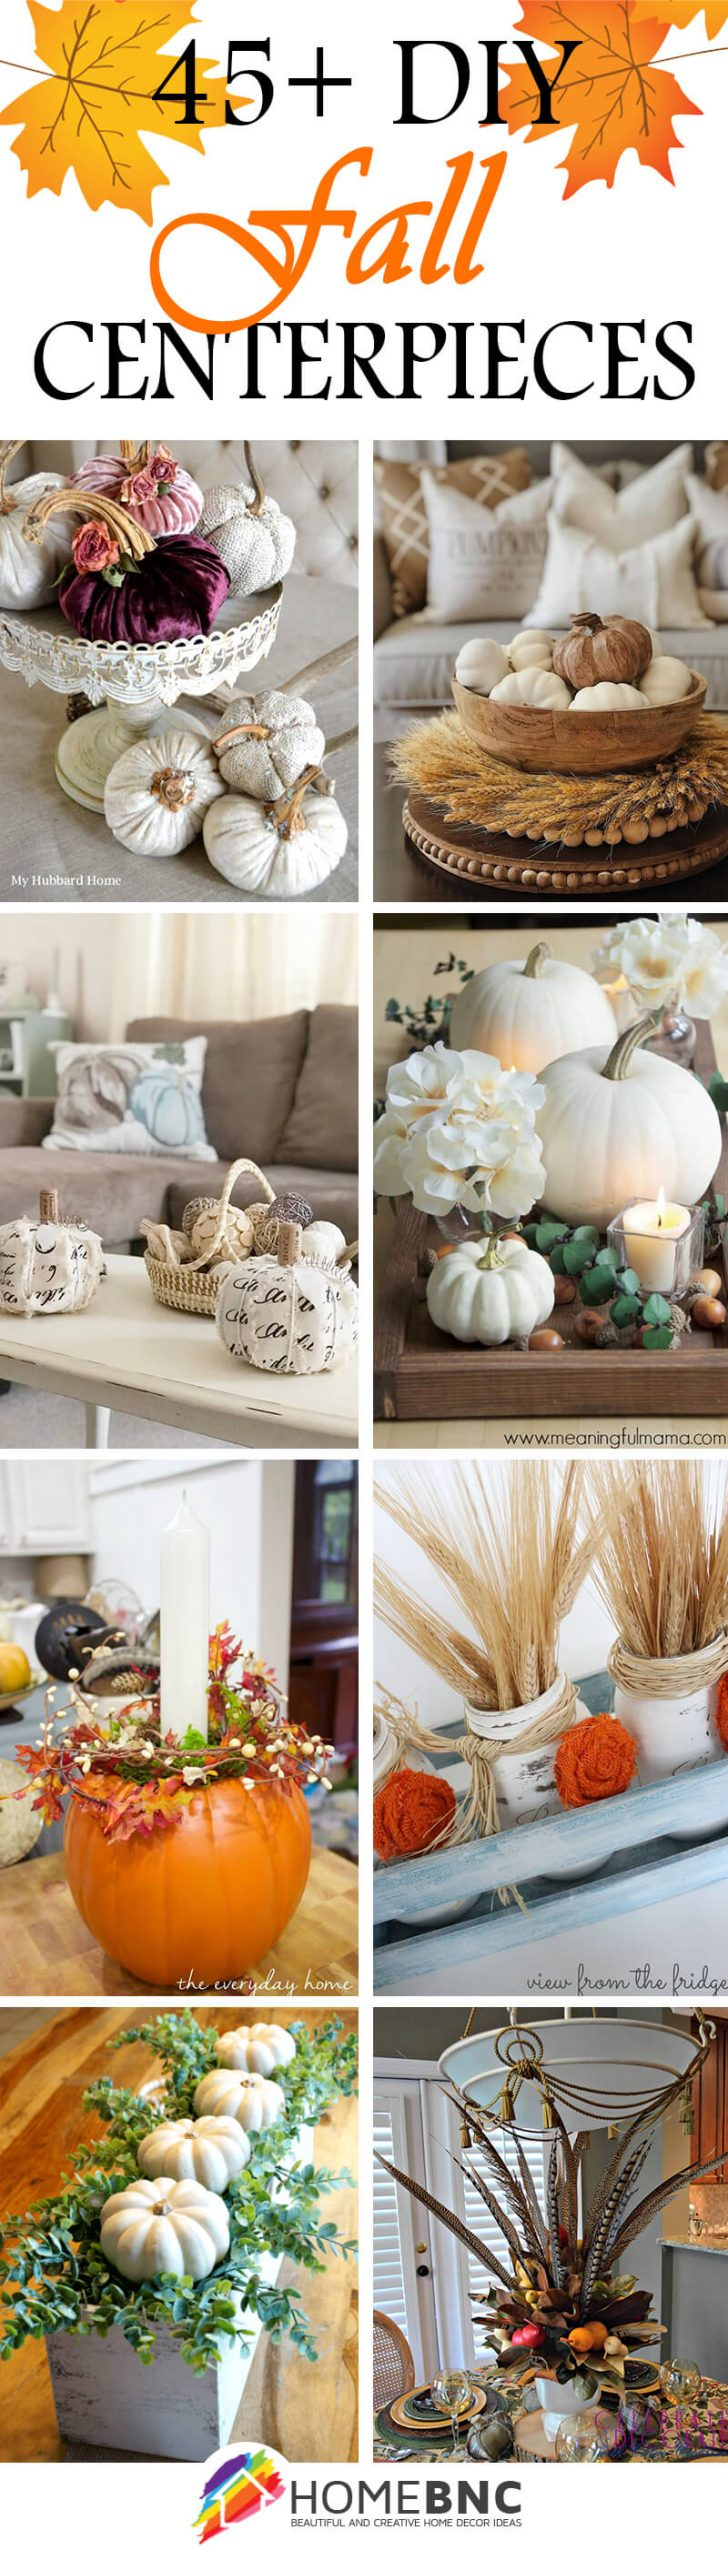 45 Best Diy Fall Centerpiece Ideas And Decorations For 2021